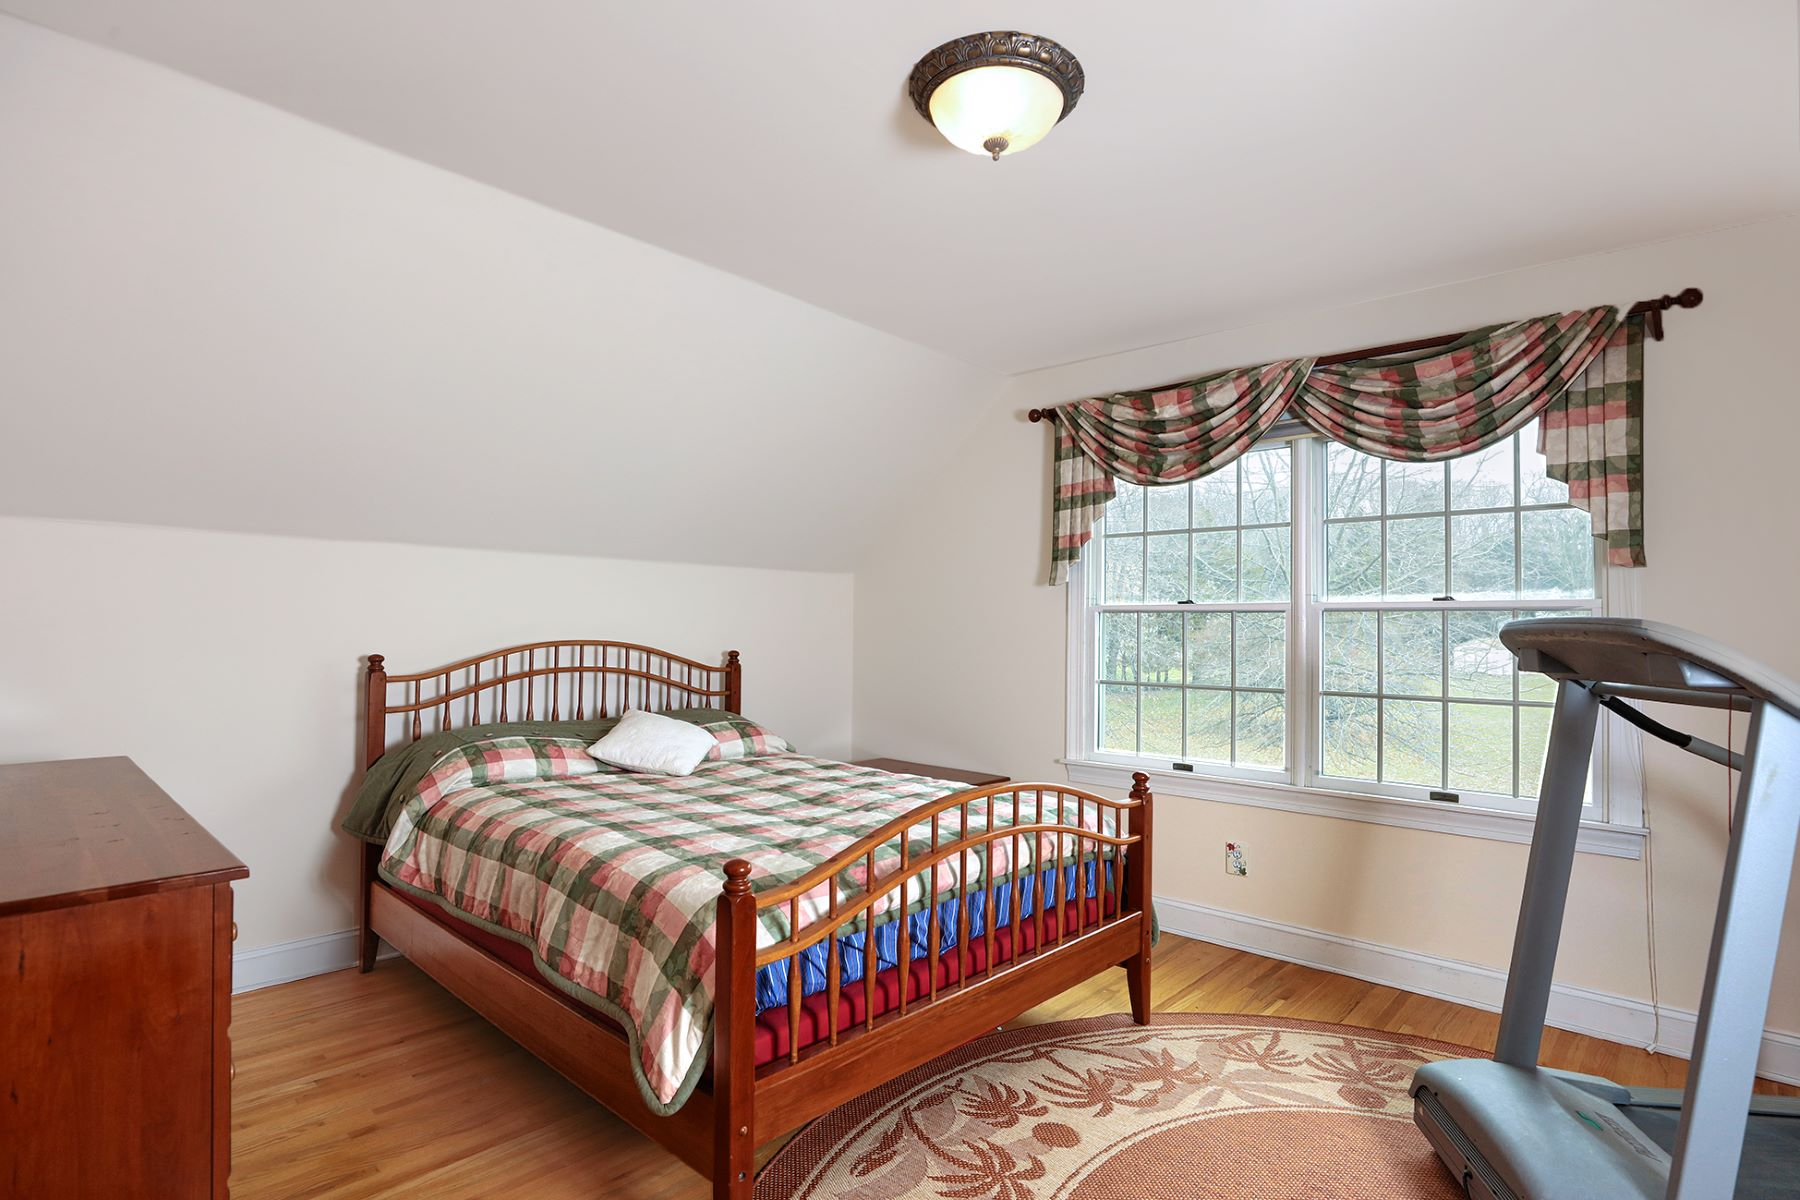 Additional photo for property listing at Home With A Heart 27 Deer Path, Skillman, New Jersey 08558 United States